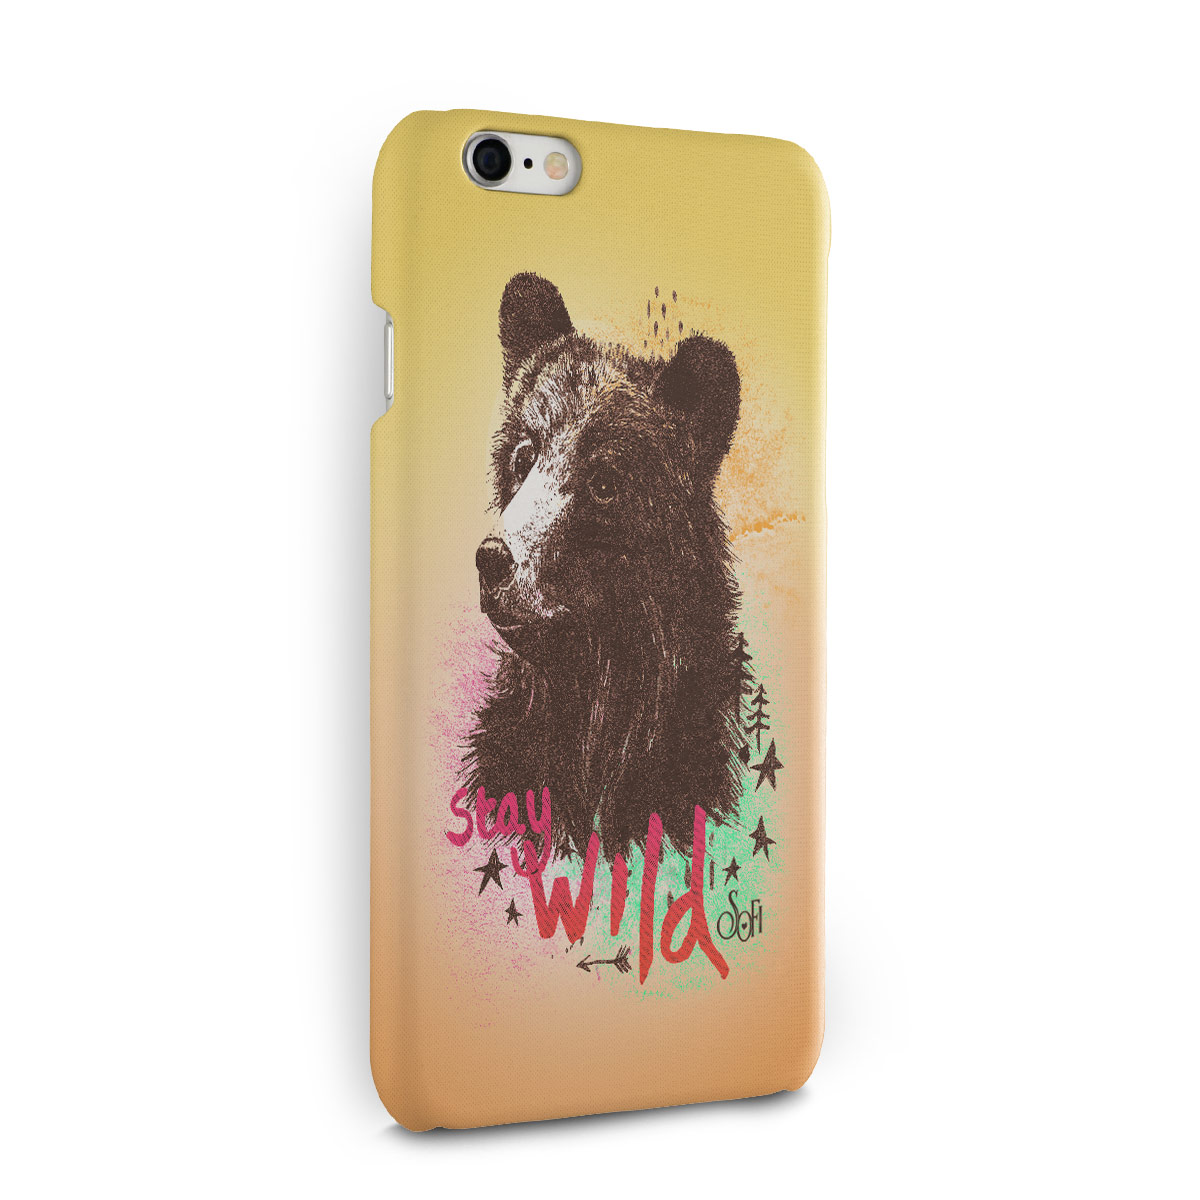 Capa para iPhone 6/6S Plus Sofia Oliveira Stay Wild